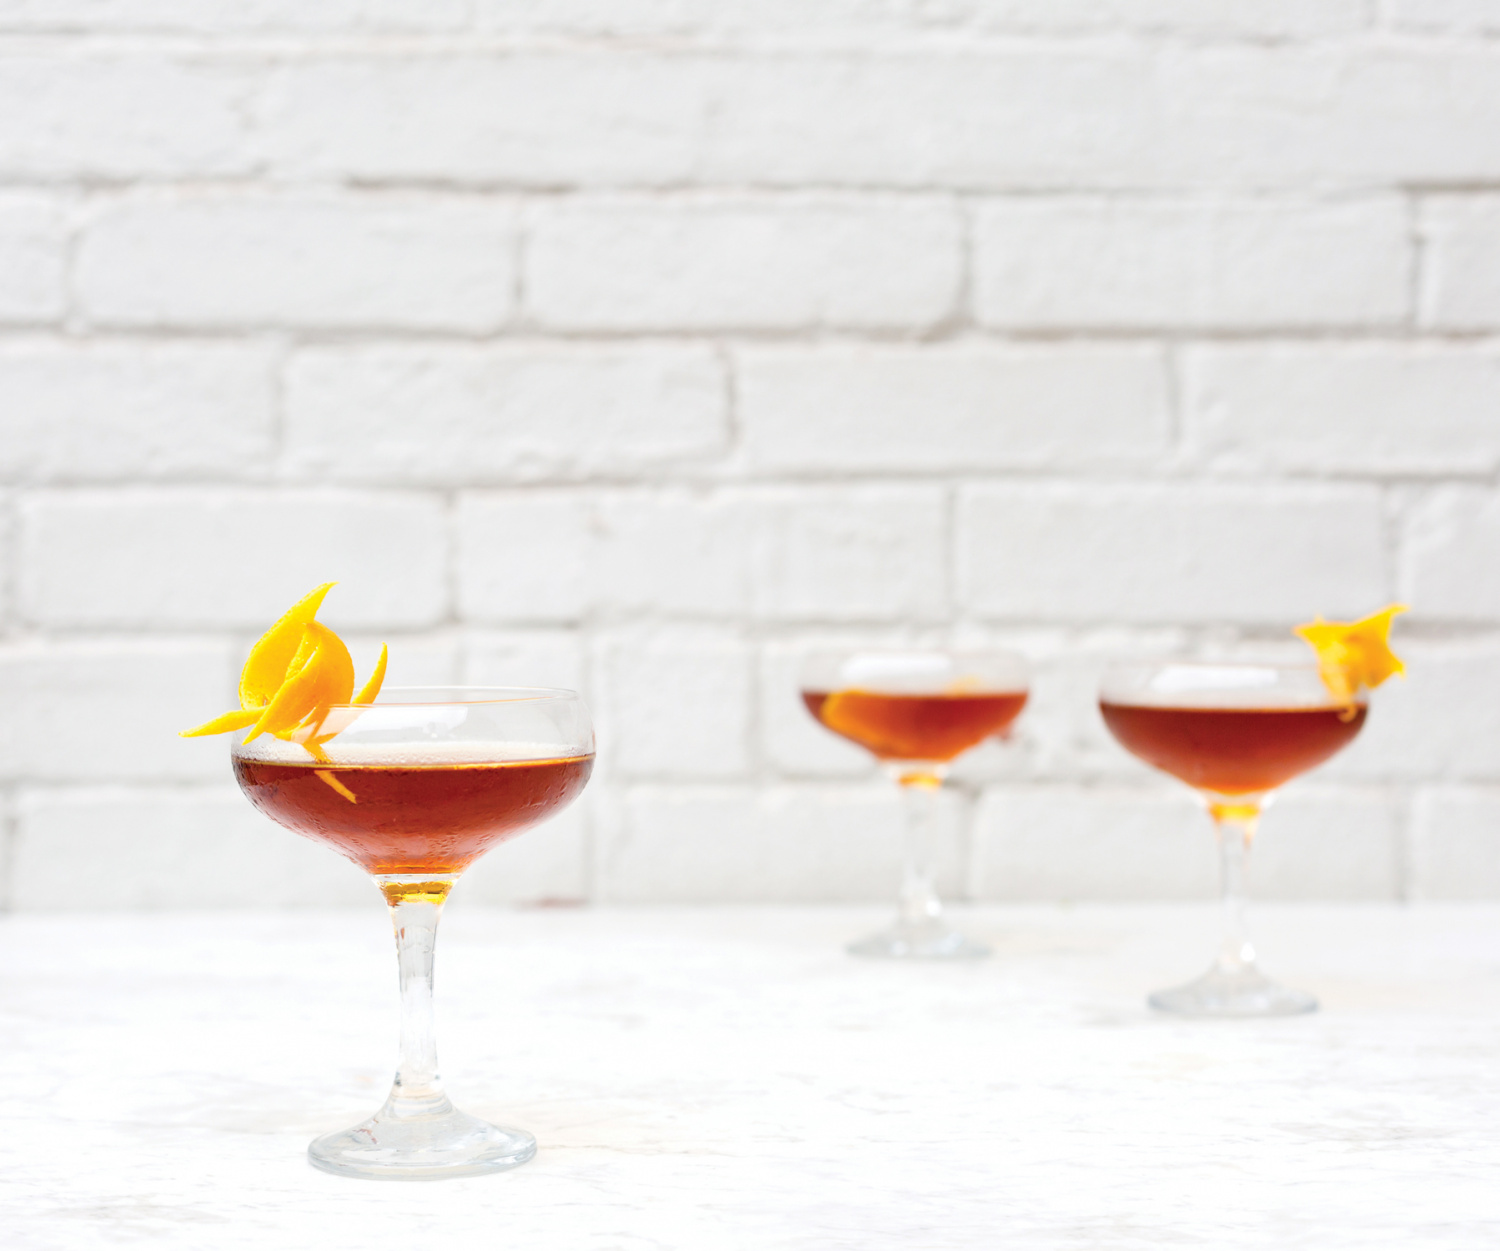 A stiff drink recipe with rum and vermouth.